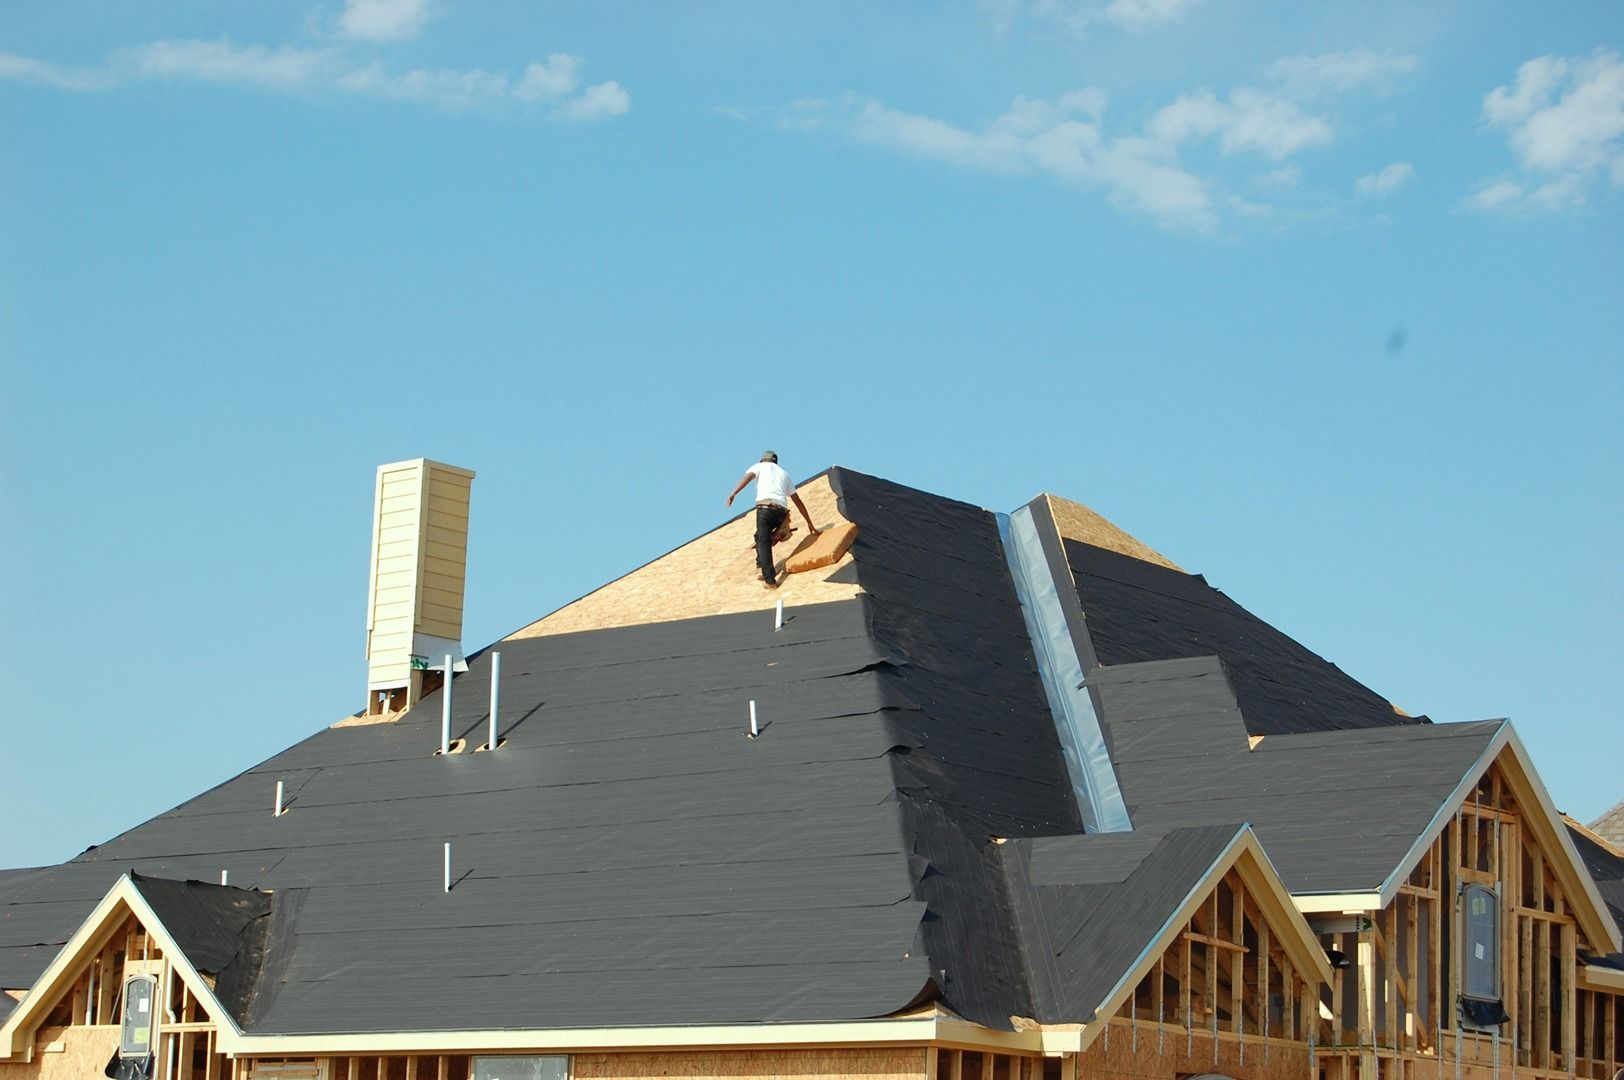 Windstorm Inspection! What benefits your home inspection? by edpinspections